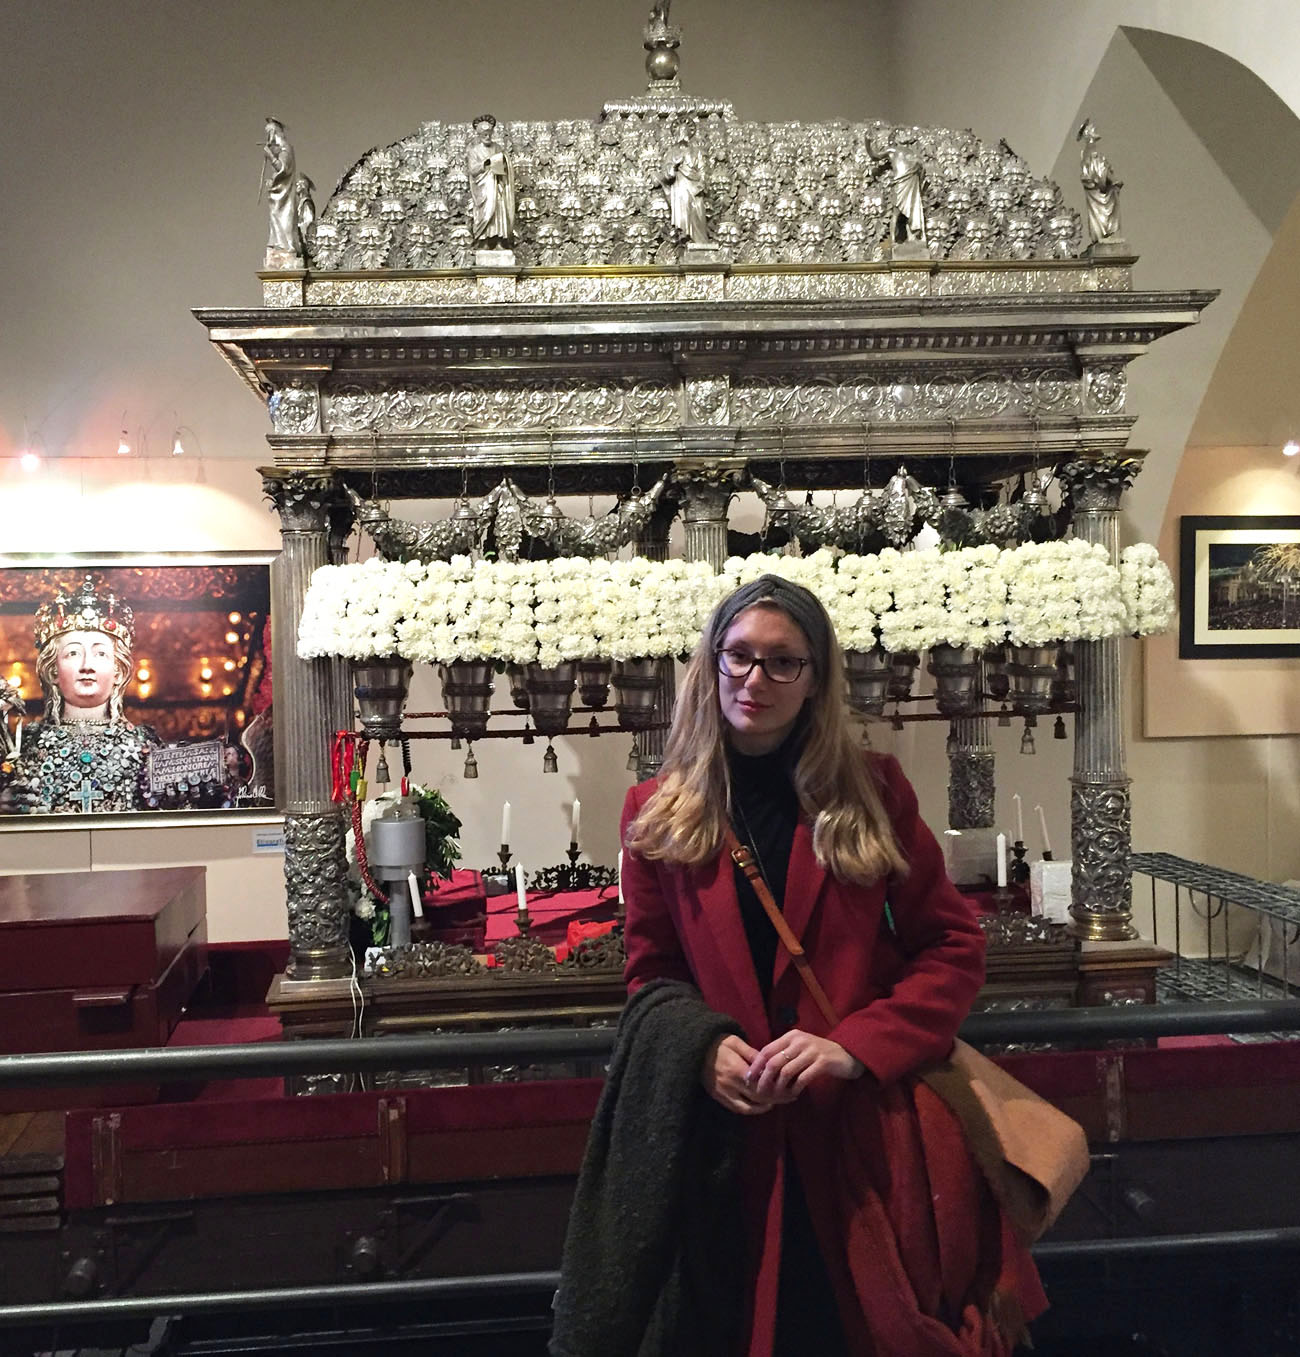 Me with St. Agatha's relics in their silver casket.